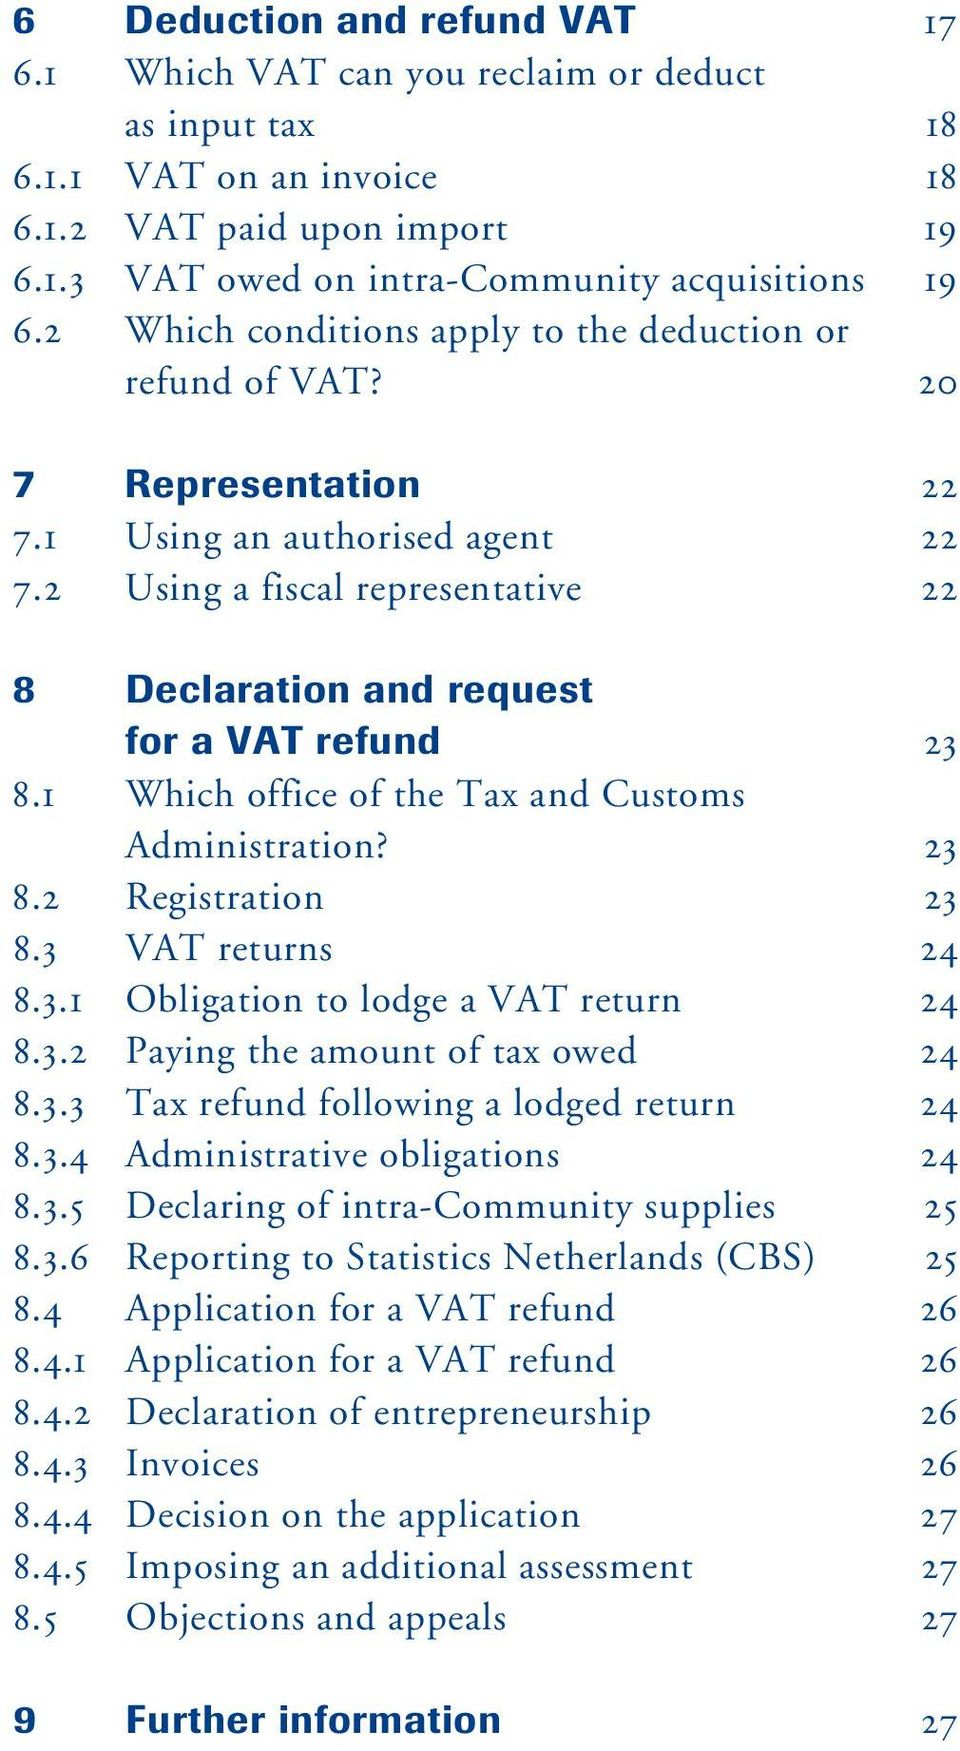 2 Using a fiscal representative 22 8 Declaration and request for a VAT refund 23 8.1 Which office of the Tax and Customs Administration? 23 8.2 Registration 23 8.3 VAT returns 24 8.3.1 Obligation to lodge a VAT return 24 8.